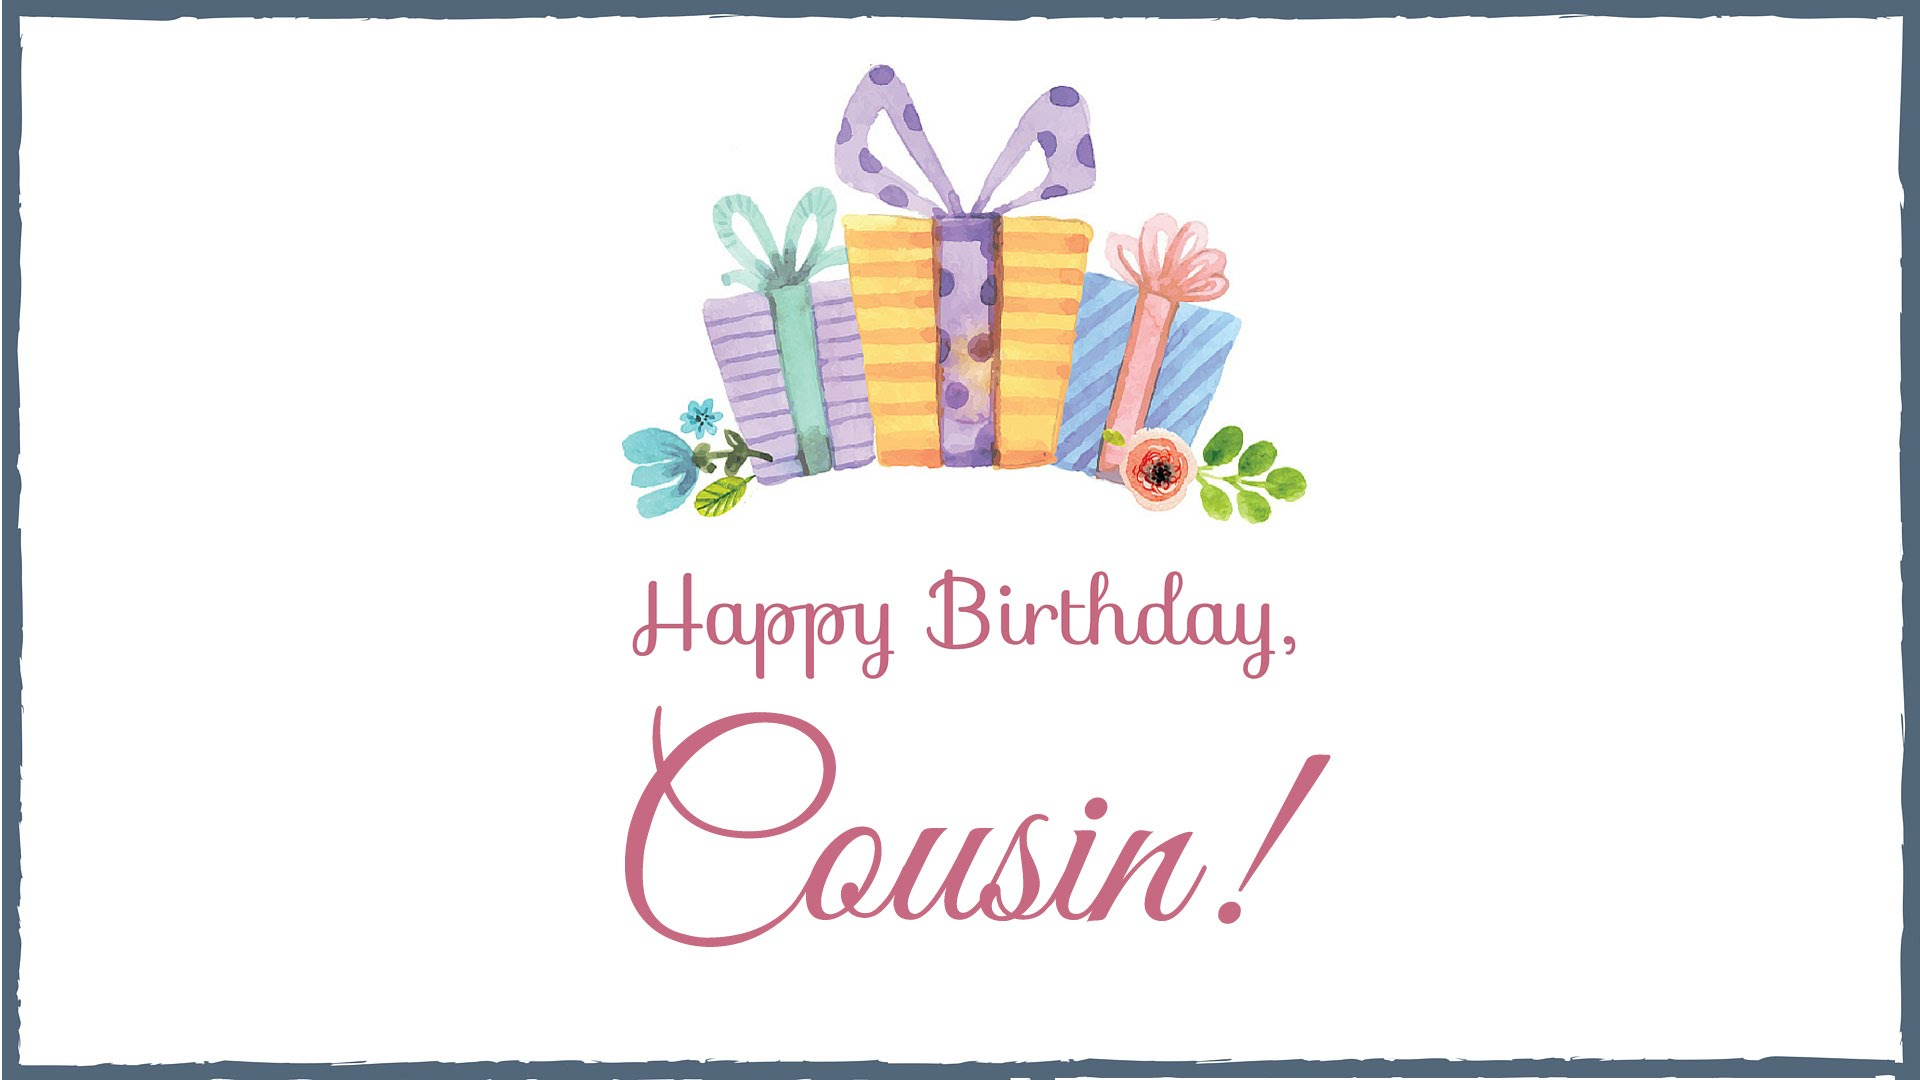 happy birthday cousin images for her ; 56660d3440b647c181be28abd643f37d